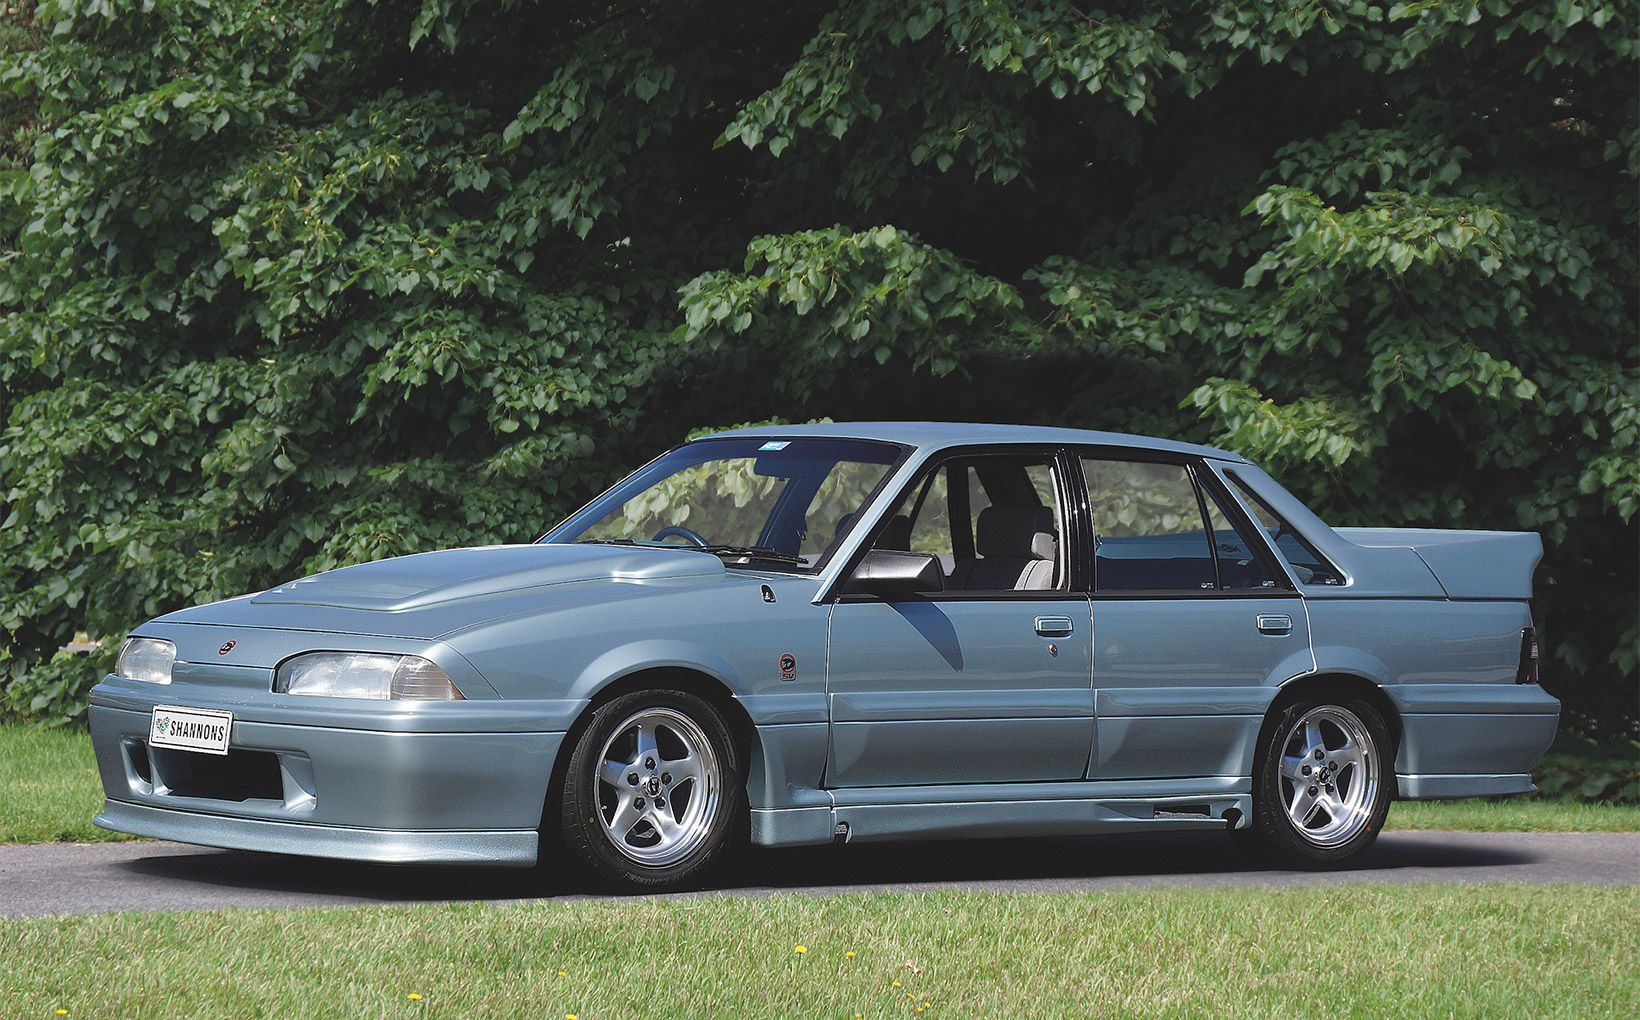 HSV/HDT Commodore feast at Shannons Late Summer Sale - Shannons Club